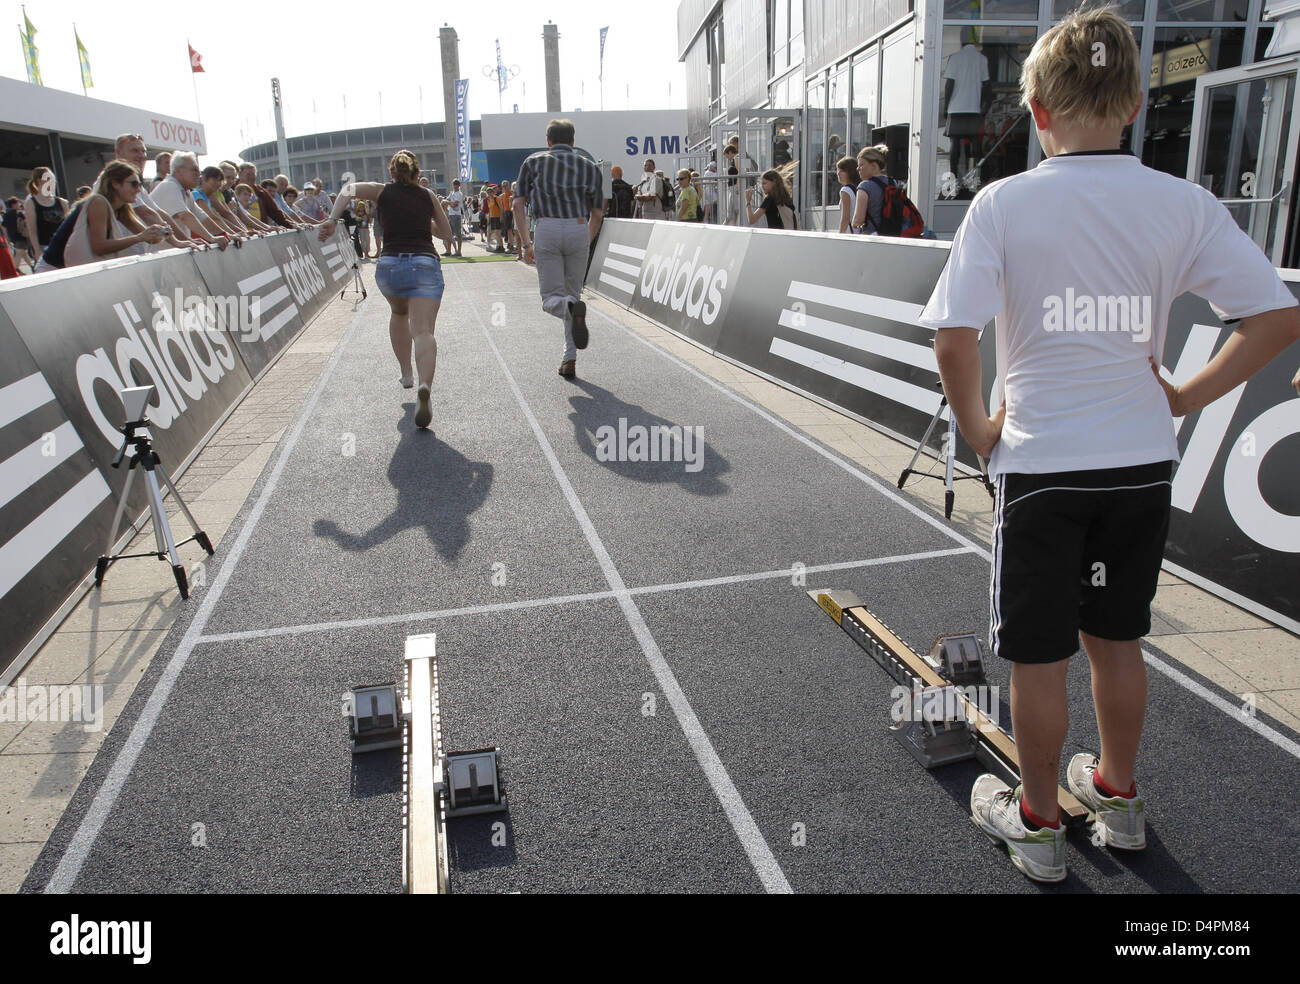 Visitors test a track during the 12th IAAF World Championships in Athletics outside the Olympic Stadium in Berlin, - Stock Image